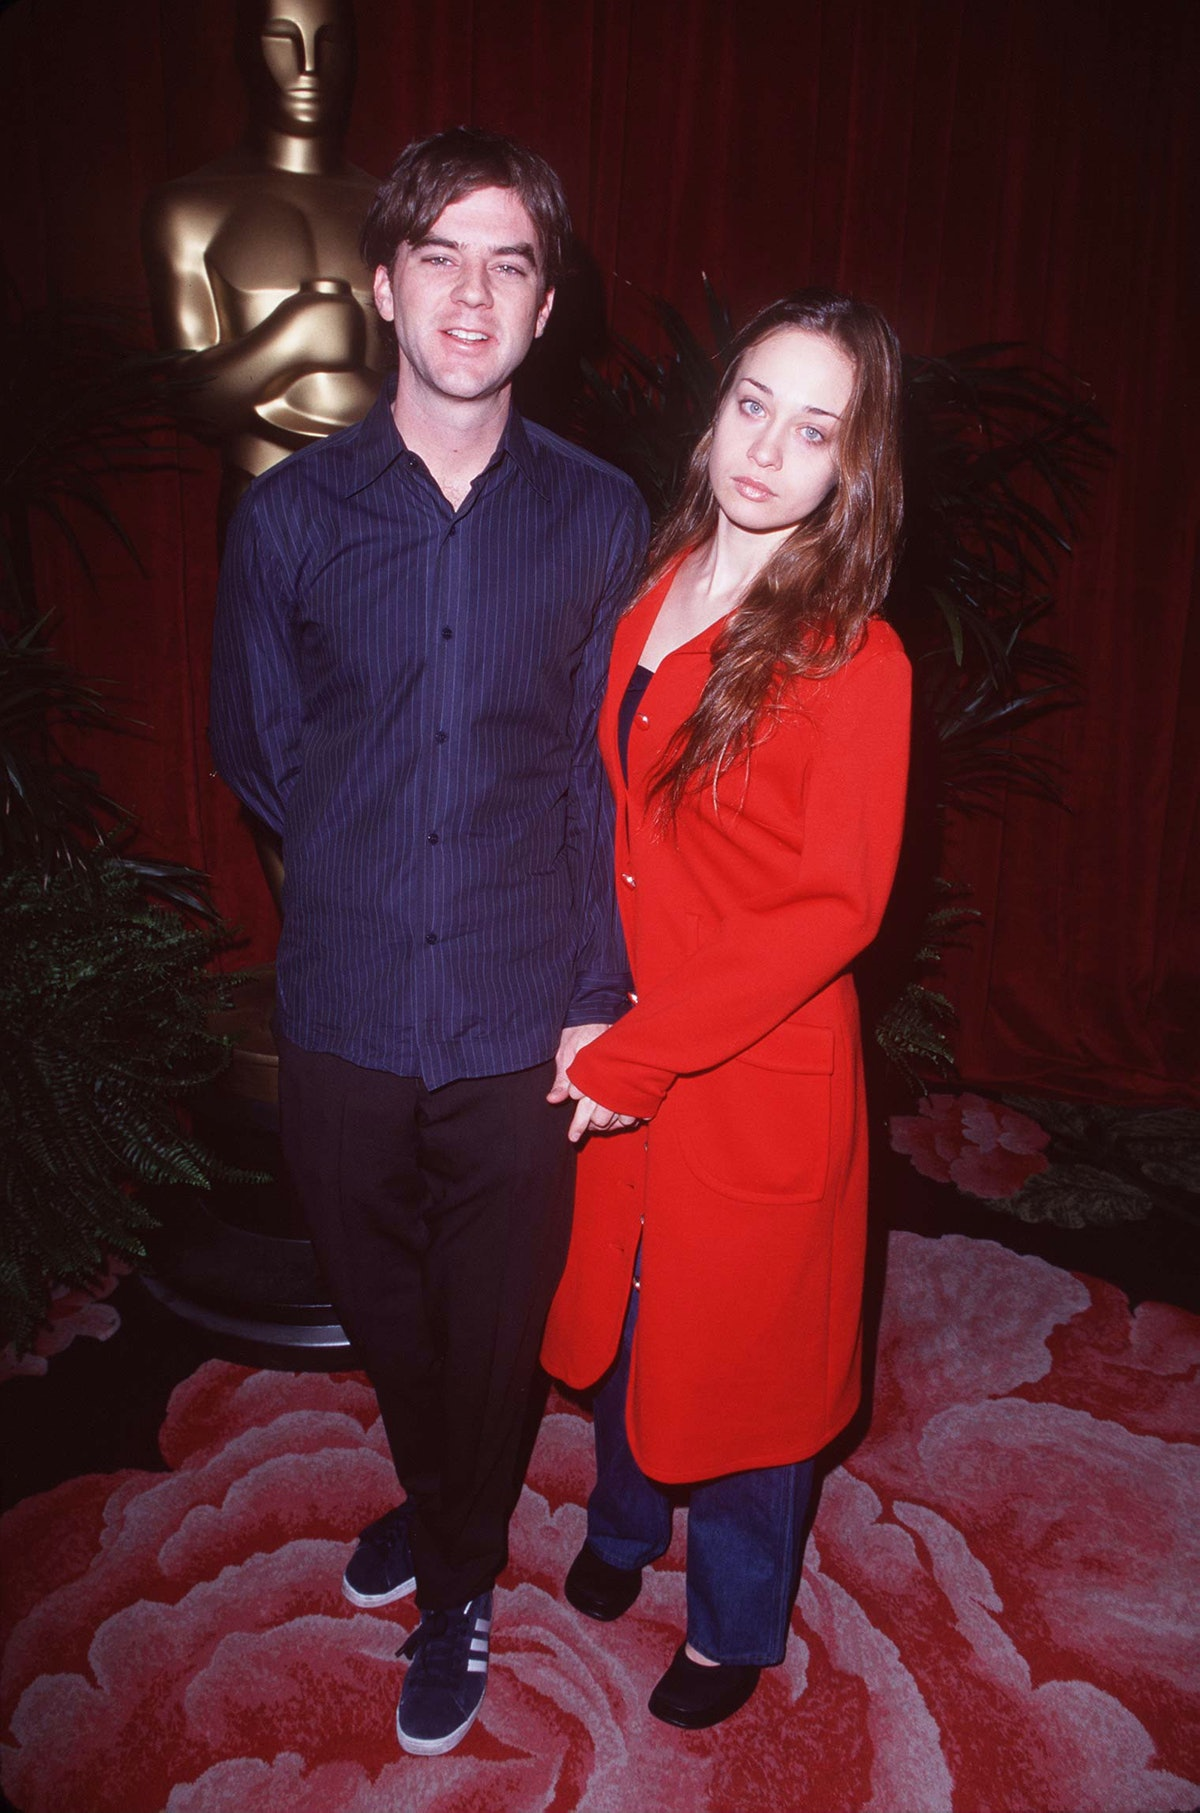 Paul Thomas Anderson and Fiona Apple